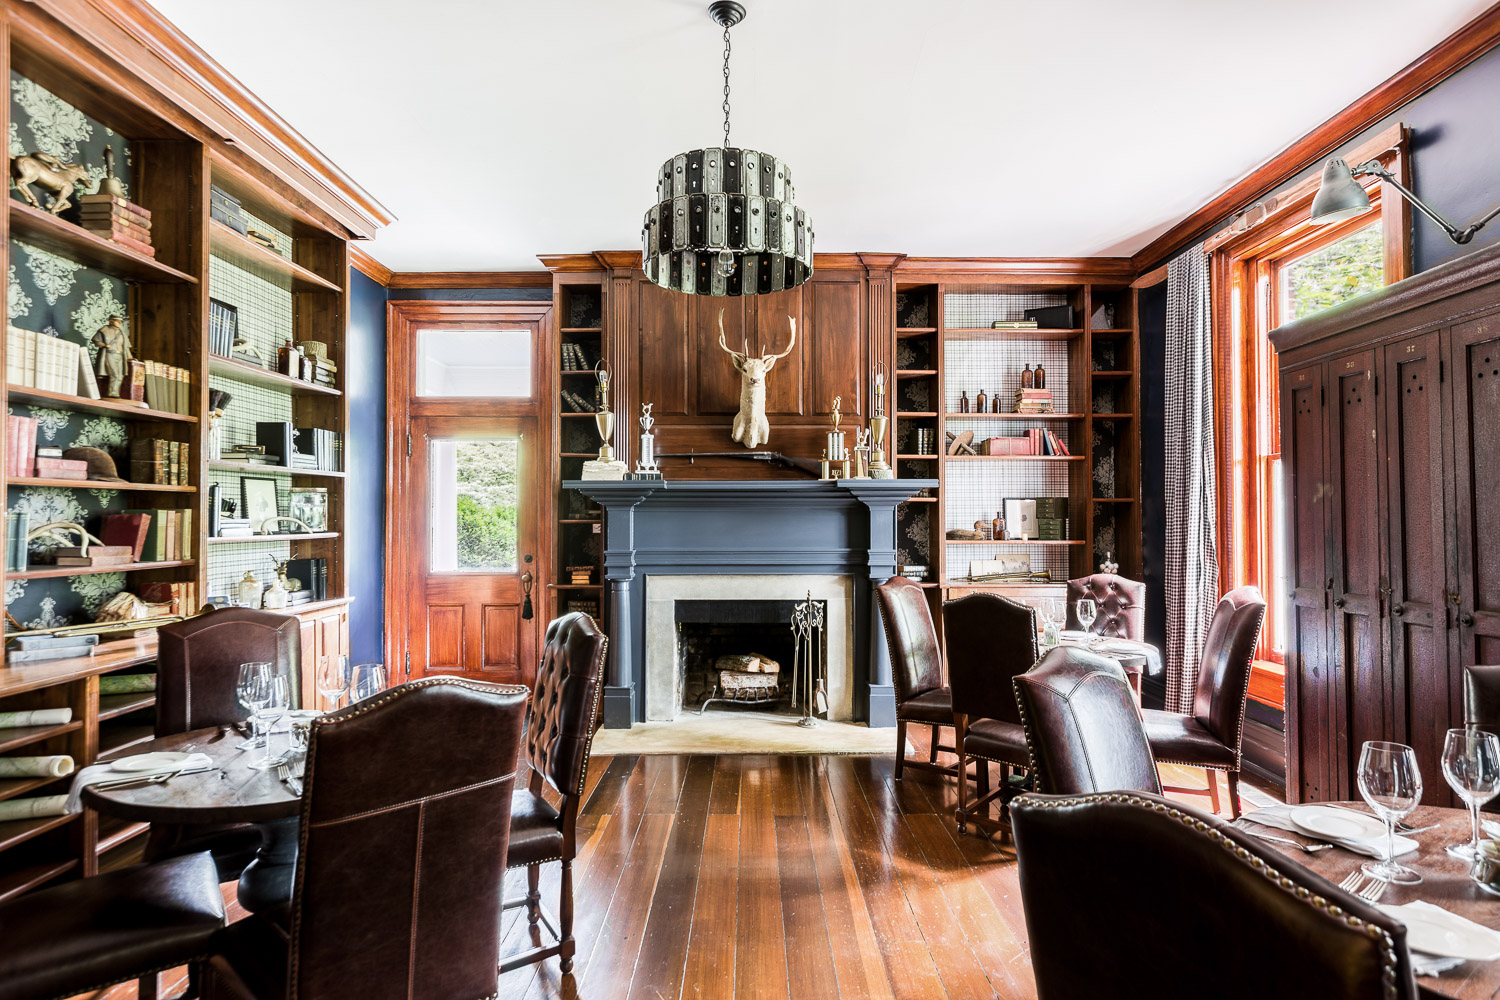 This cozy room has a library type feel with antique books and dark wood throughout | Interior Design: Kim Leggett | Photographer: Alyssa Rosenheck